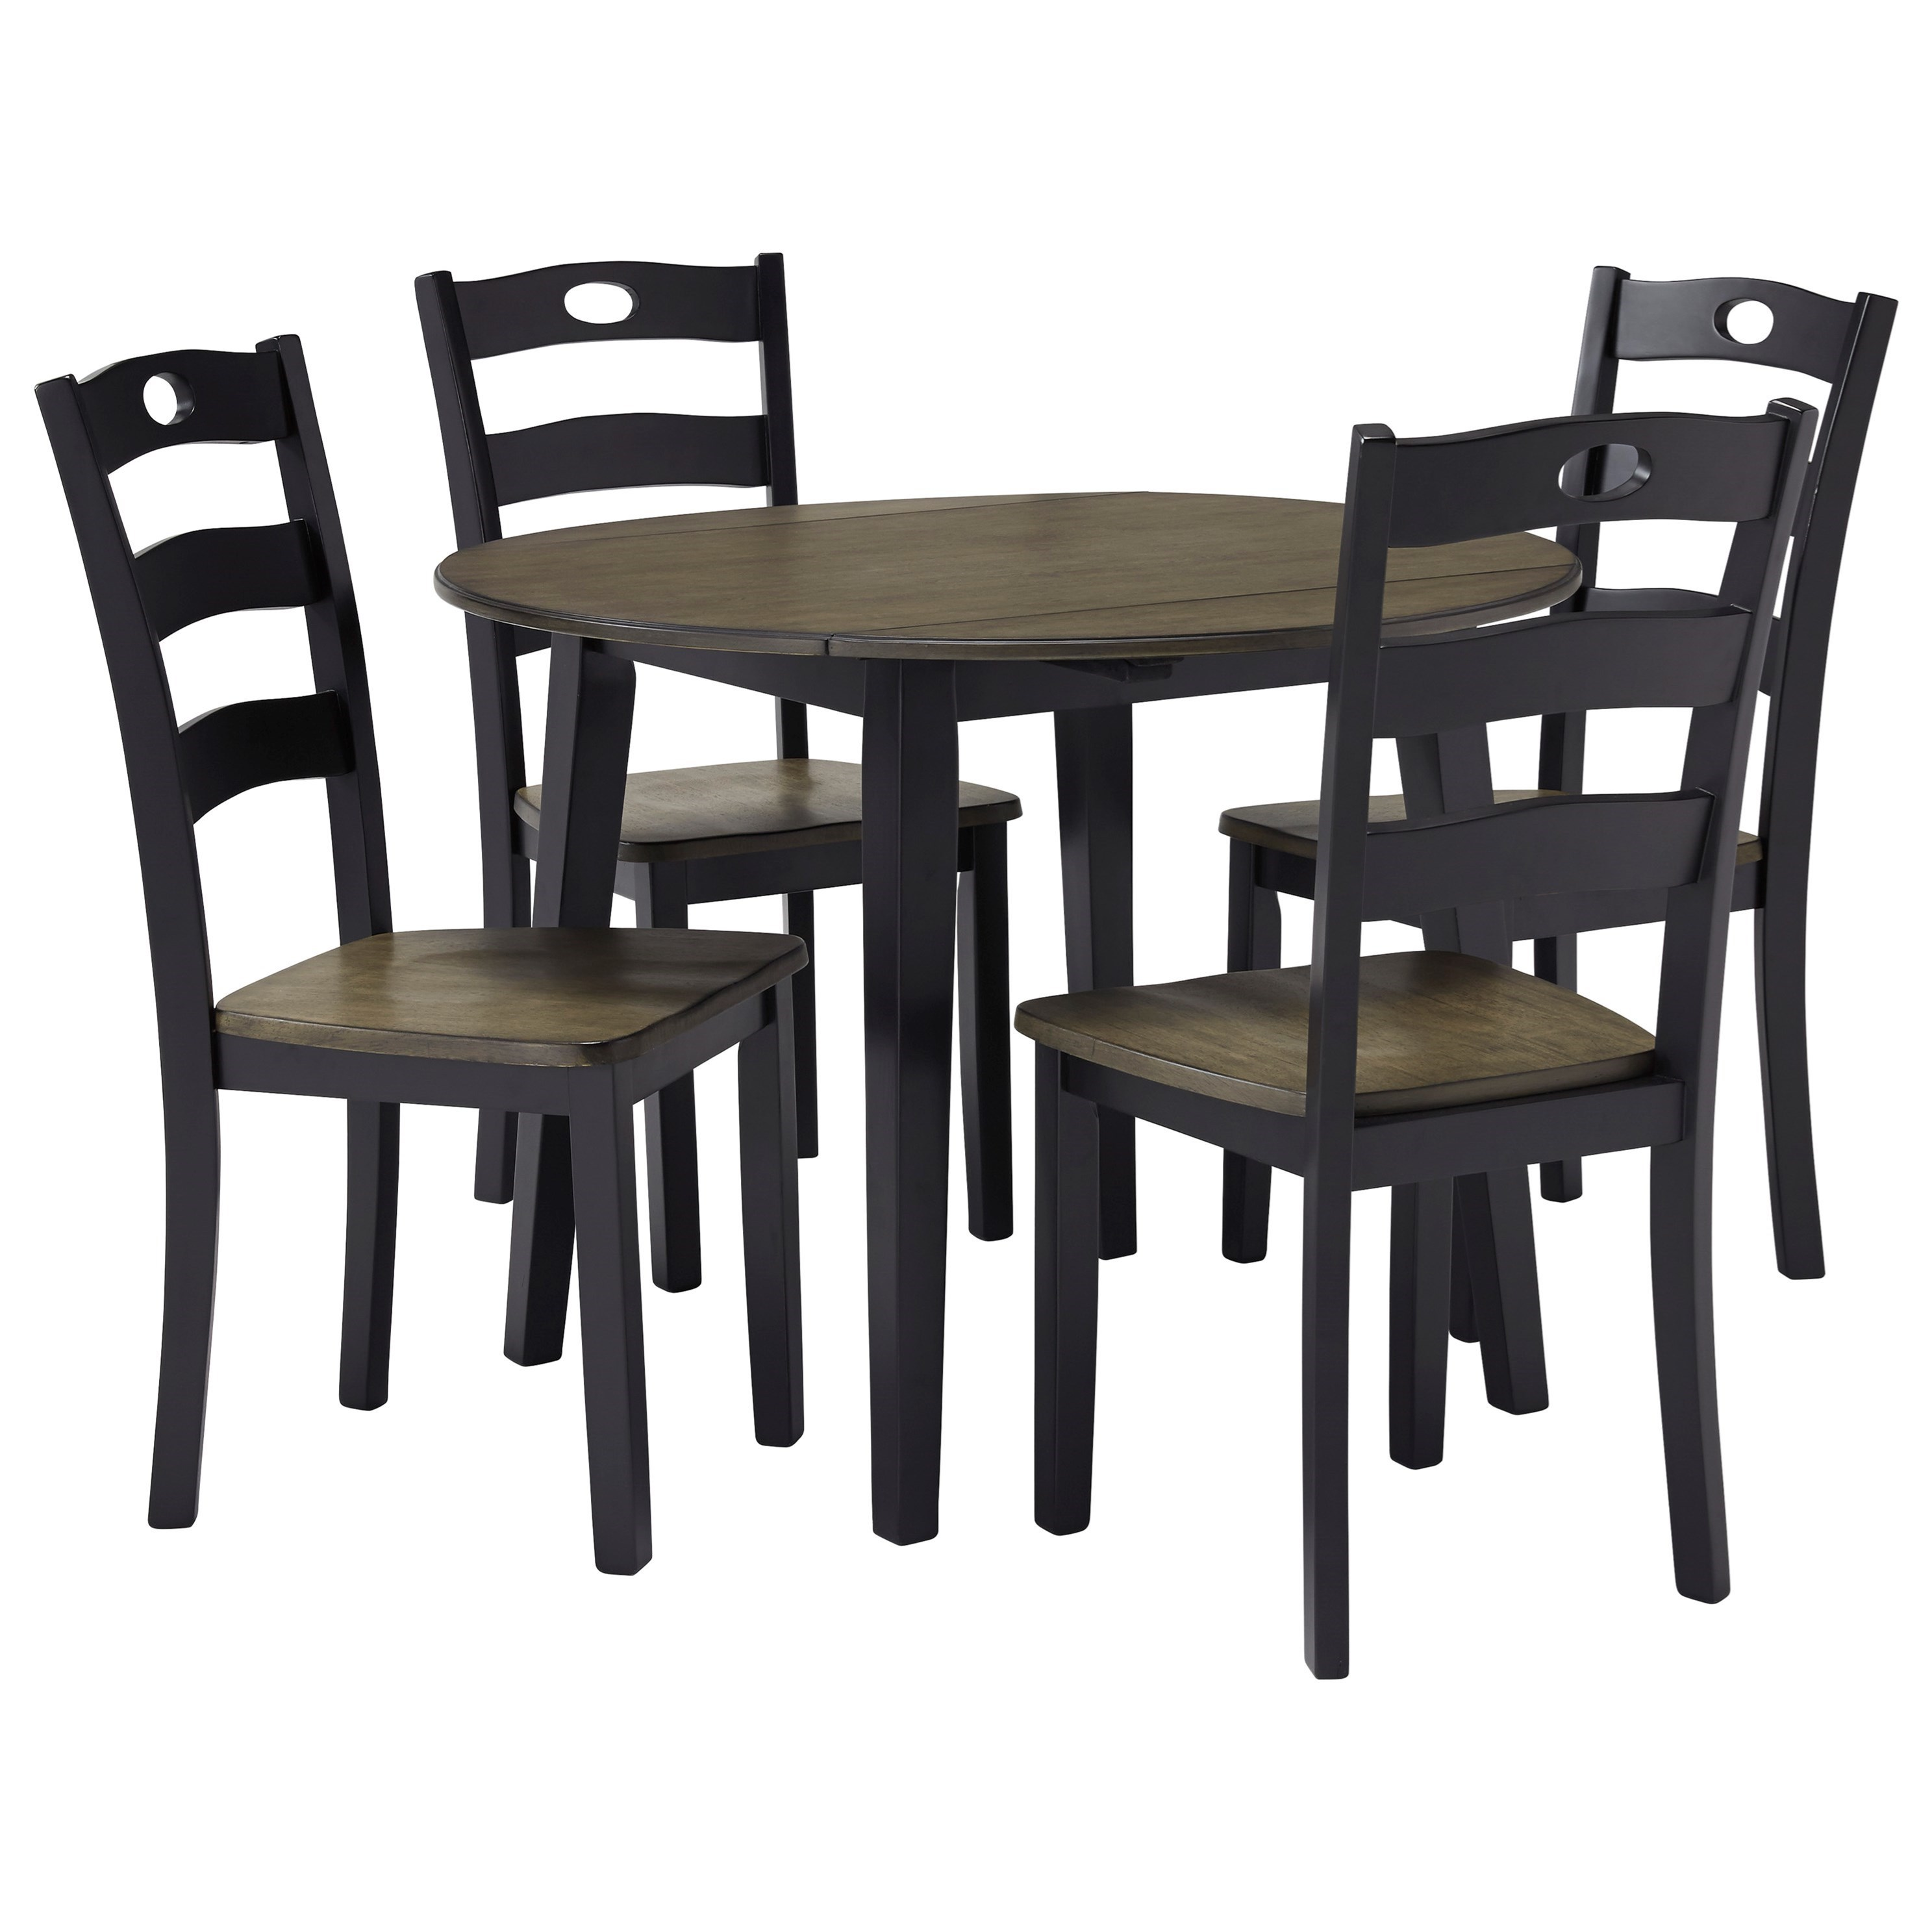 signature design by ashley froshburg two tone finish 5 piece round drop leaf table set value. Black Bedroom Furniture Sets. Home Design Ideas